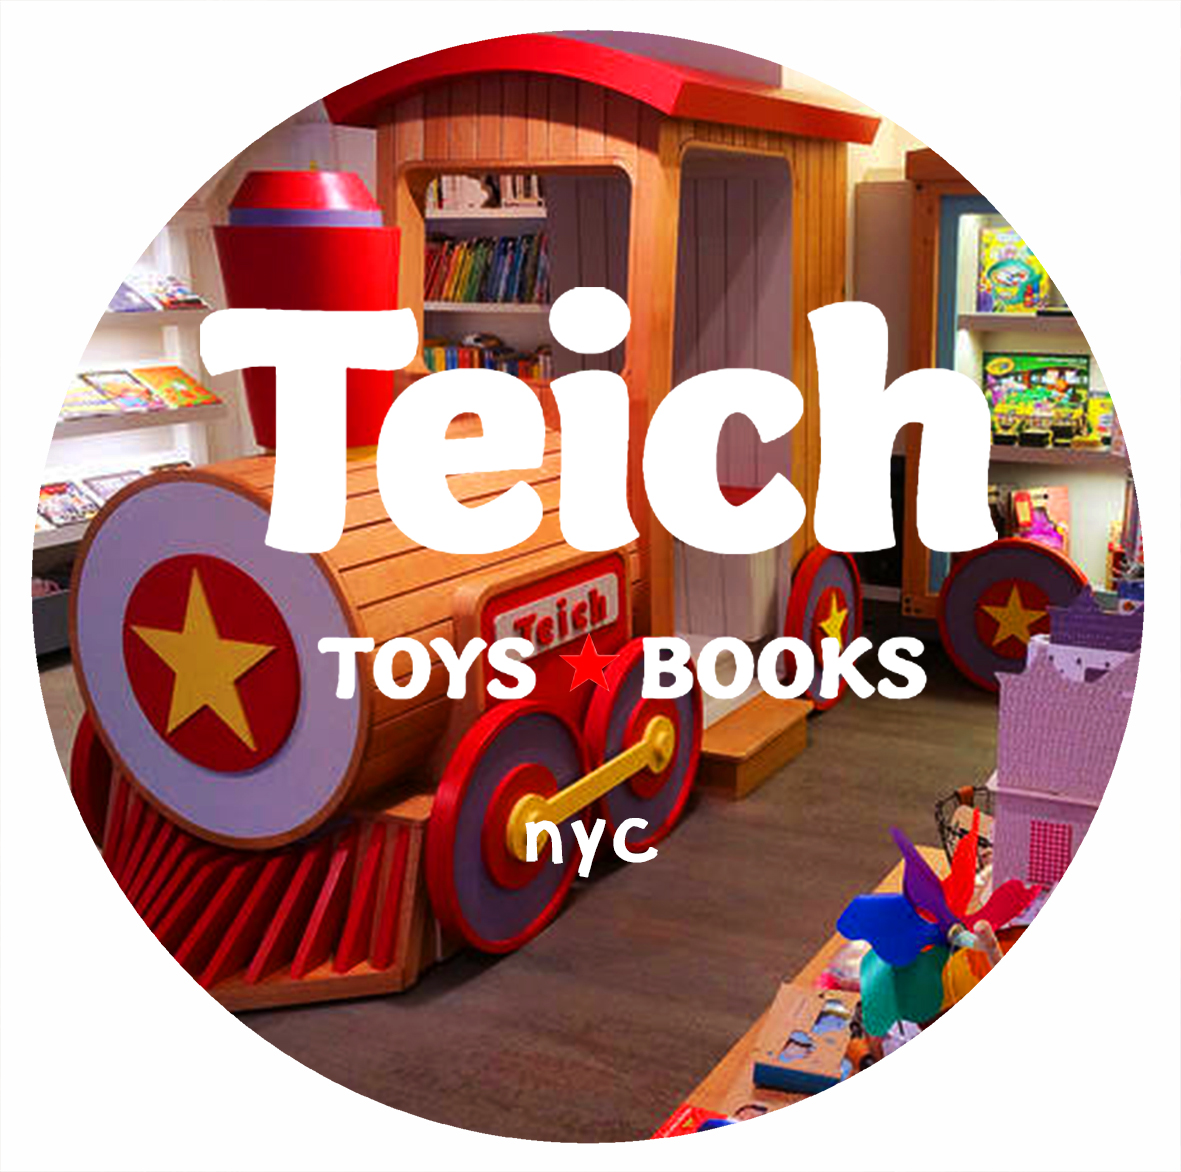 Copy of teich toys & books